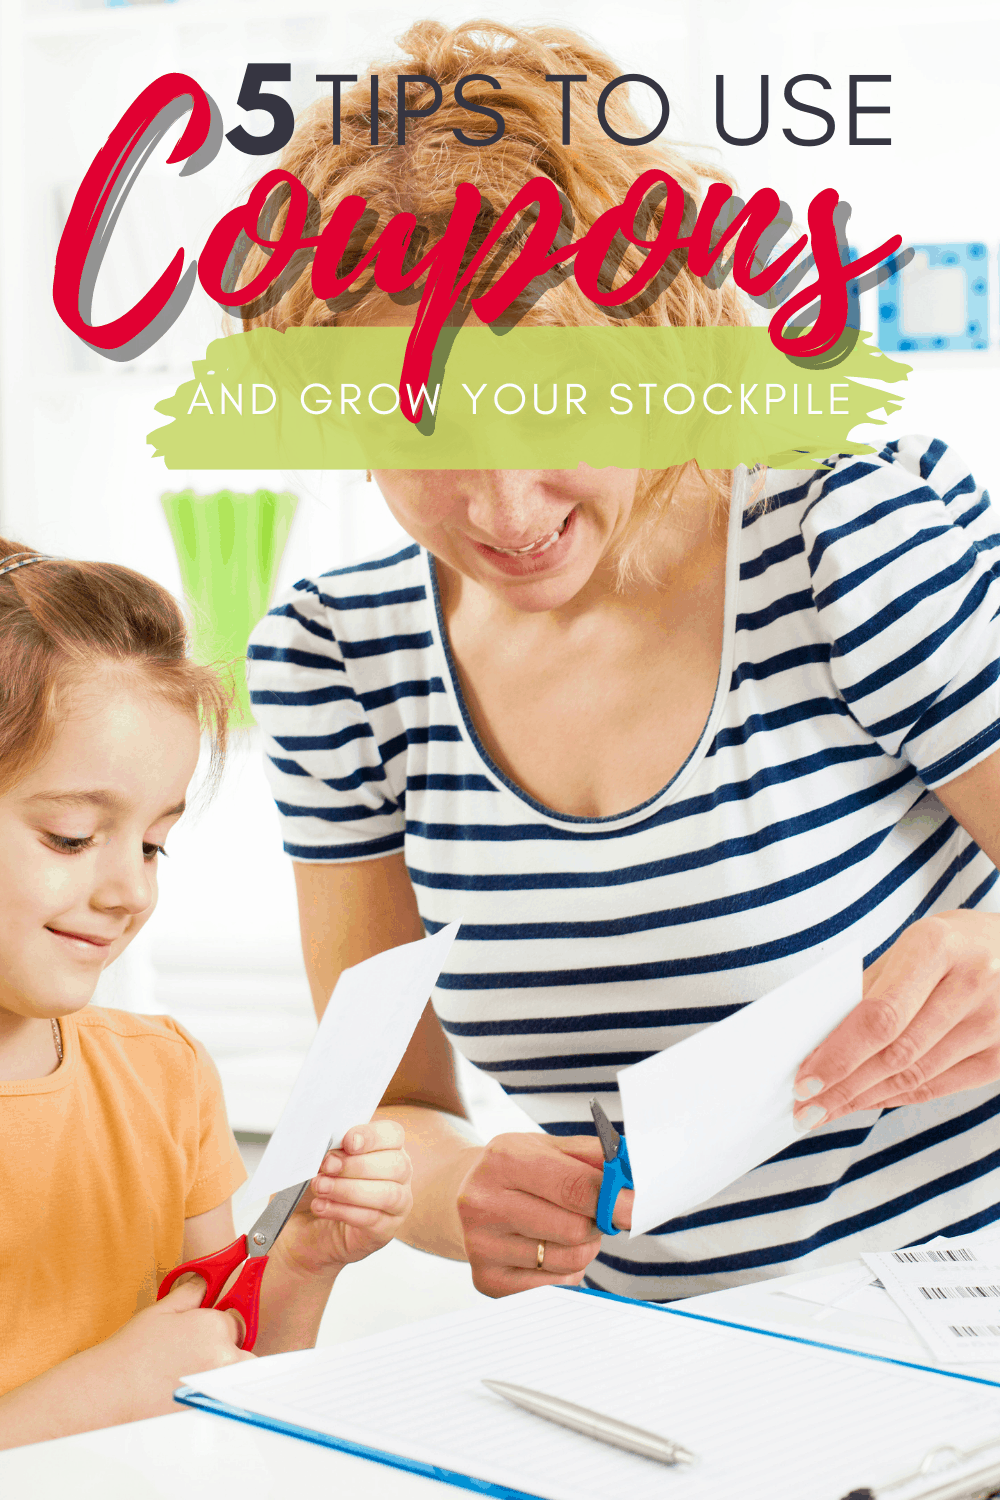 If you haven't been using coupons this whole time, it's not too late to start. Get the tips here on how to save money with coupons while still growing your stockpile. via @mystayathome